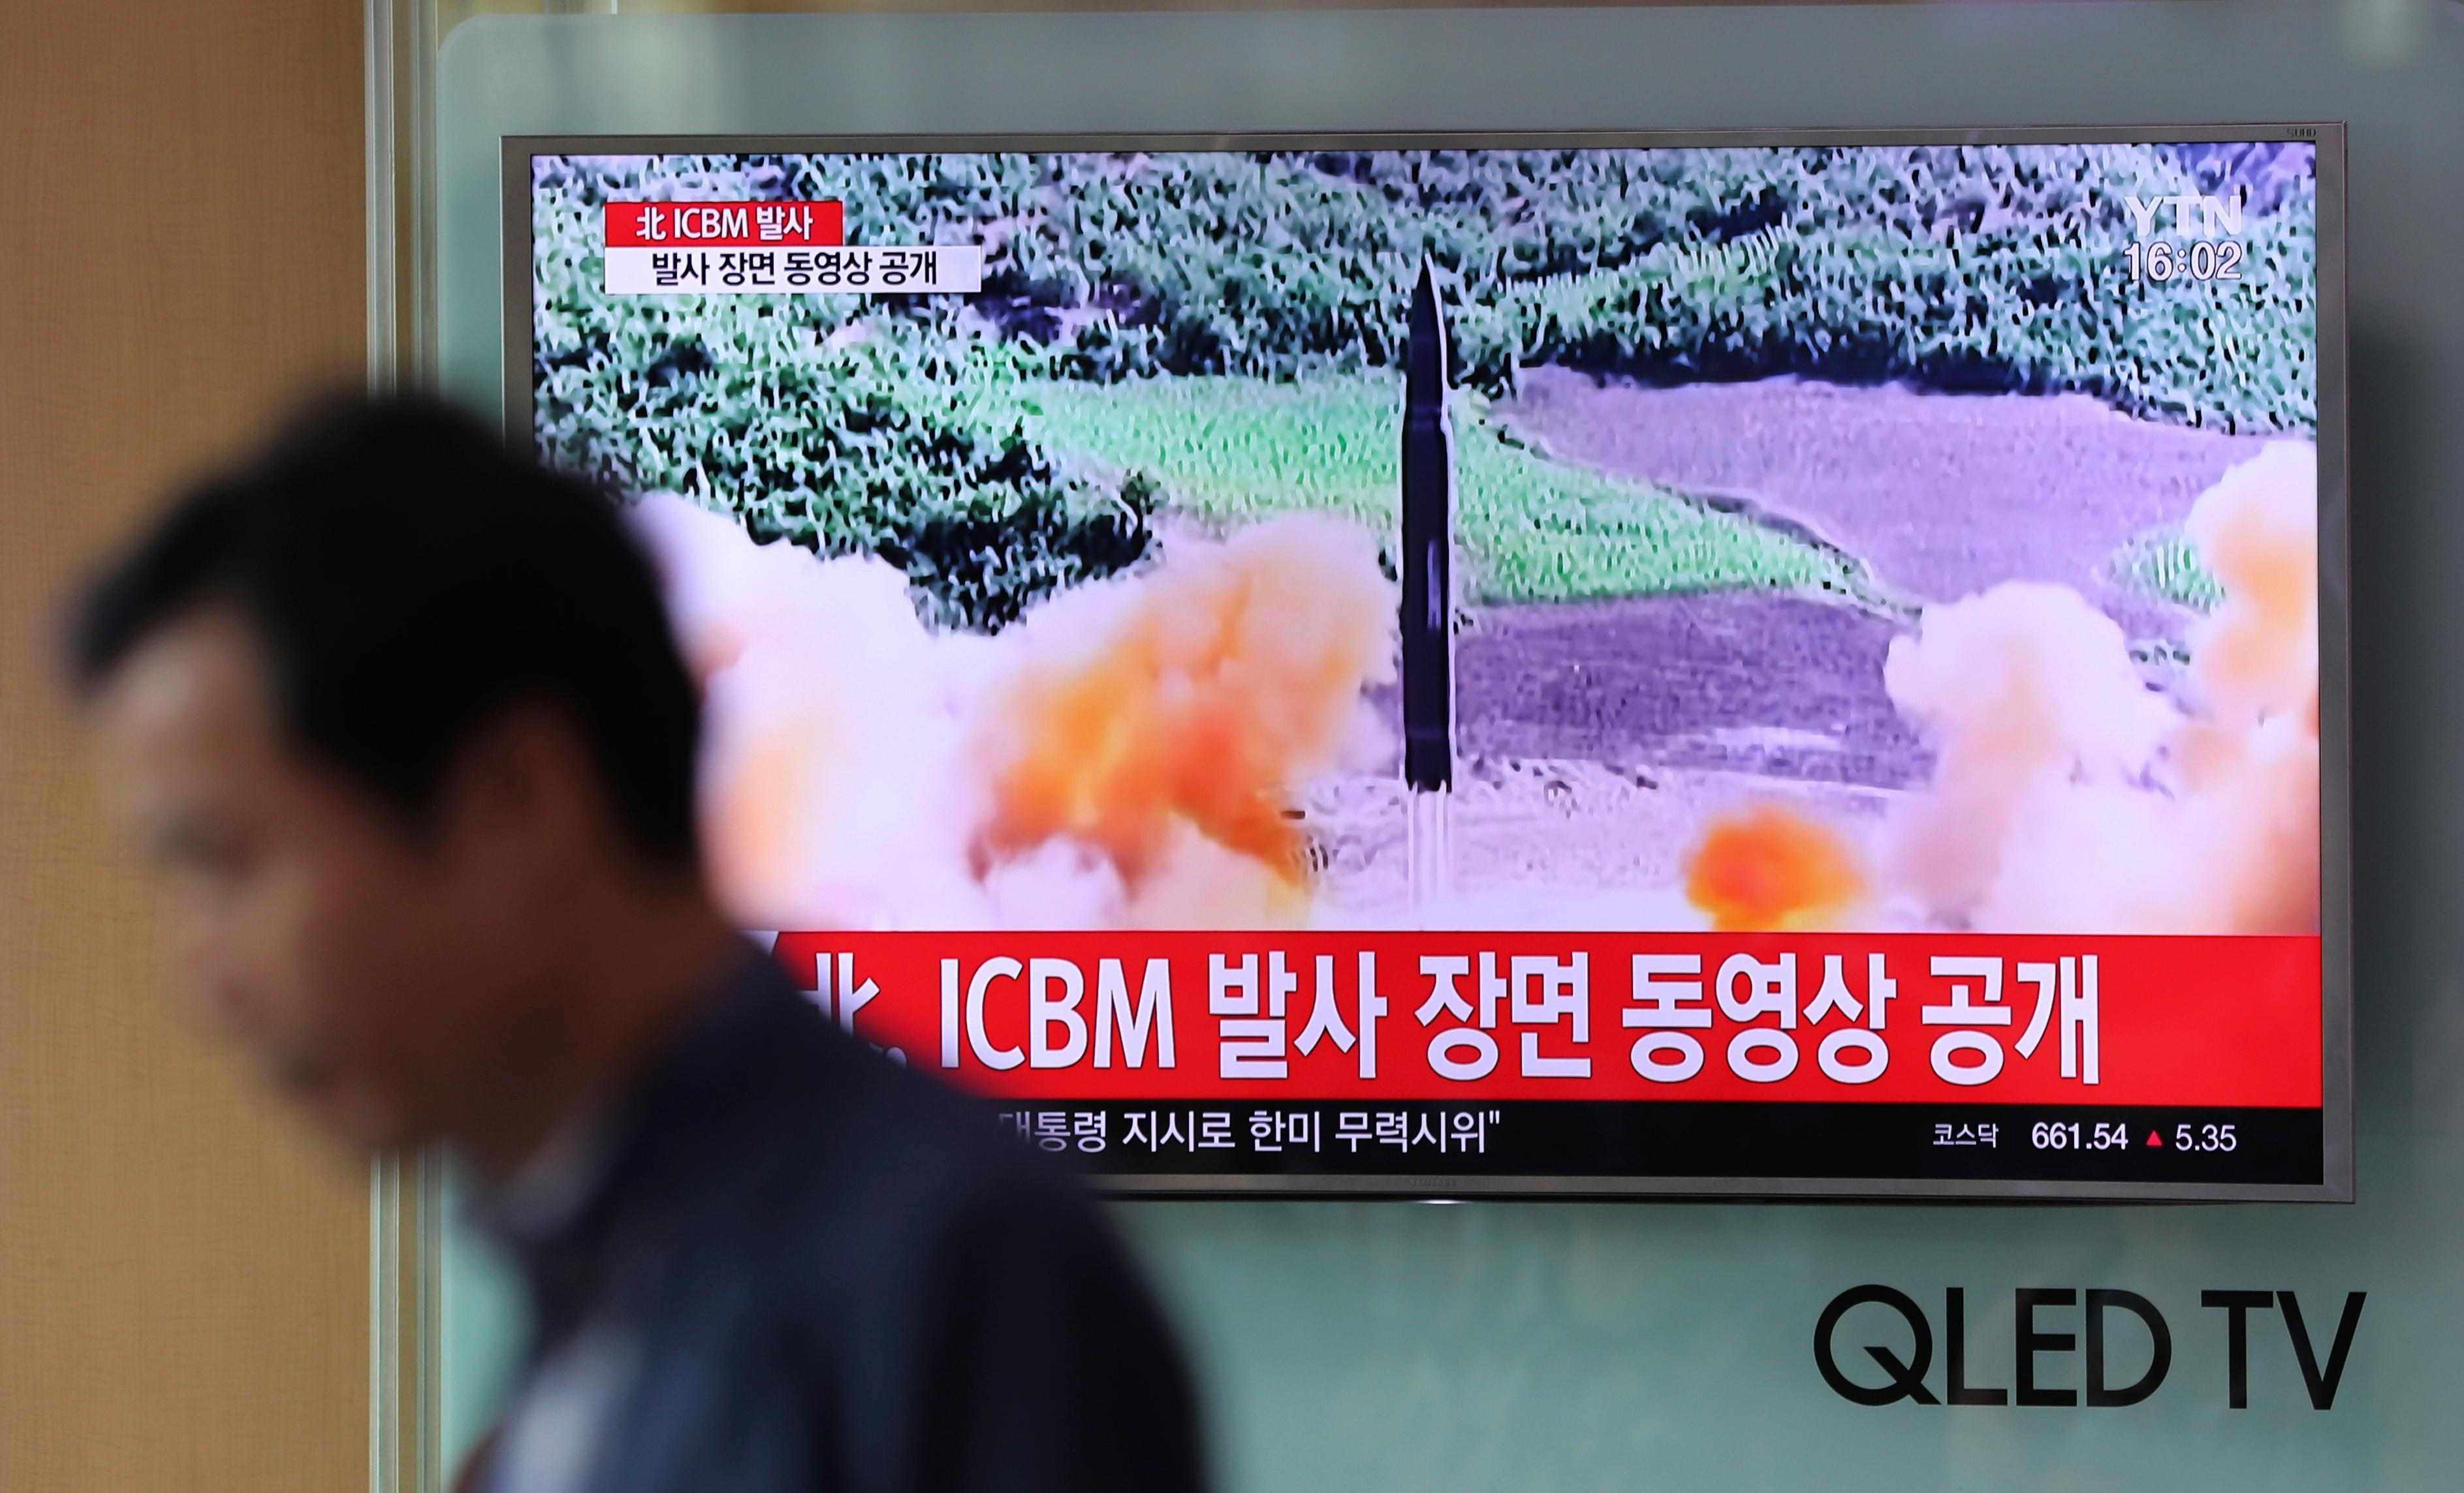 A man walks by a TV screen showing a local news program reporting about North Korea's missile firing at Seoul Train Station in Seoul, South Korea, Wednesday, July 5, 2017.  (AP Photo/Lee Jin-man)